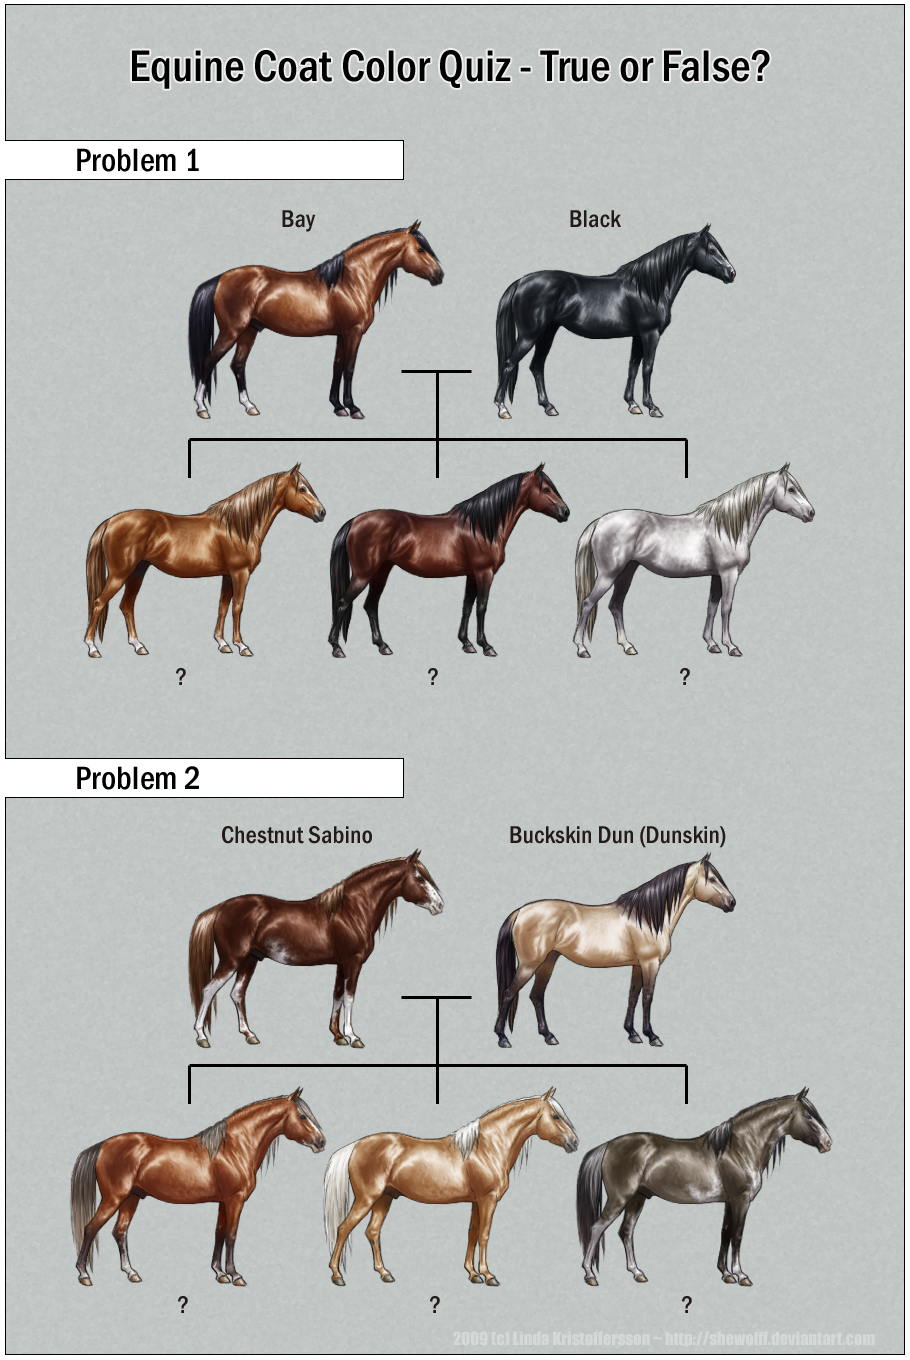 Equine coat color quiz by shewolff on deviantart equine coat color quiz by shewolff equine coat color quiz by shewolff nvjuhfo Choice Image